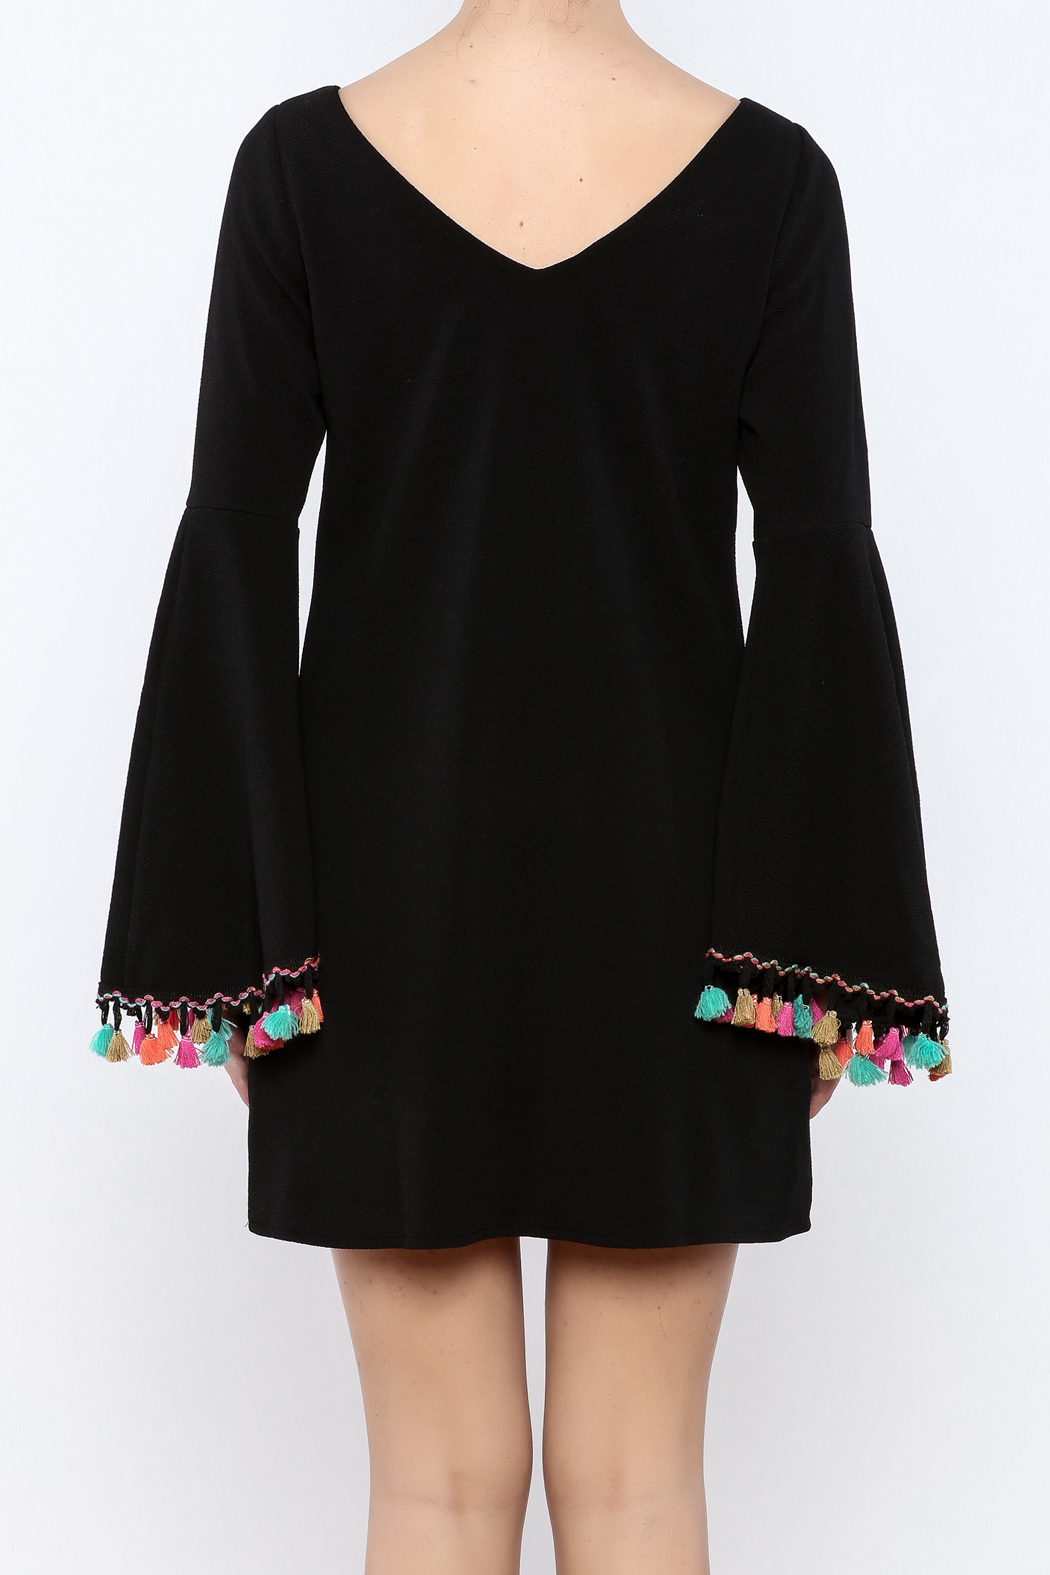 Judith March Festive Bell-Sleeved Dress - Back Cropped Image